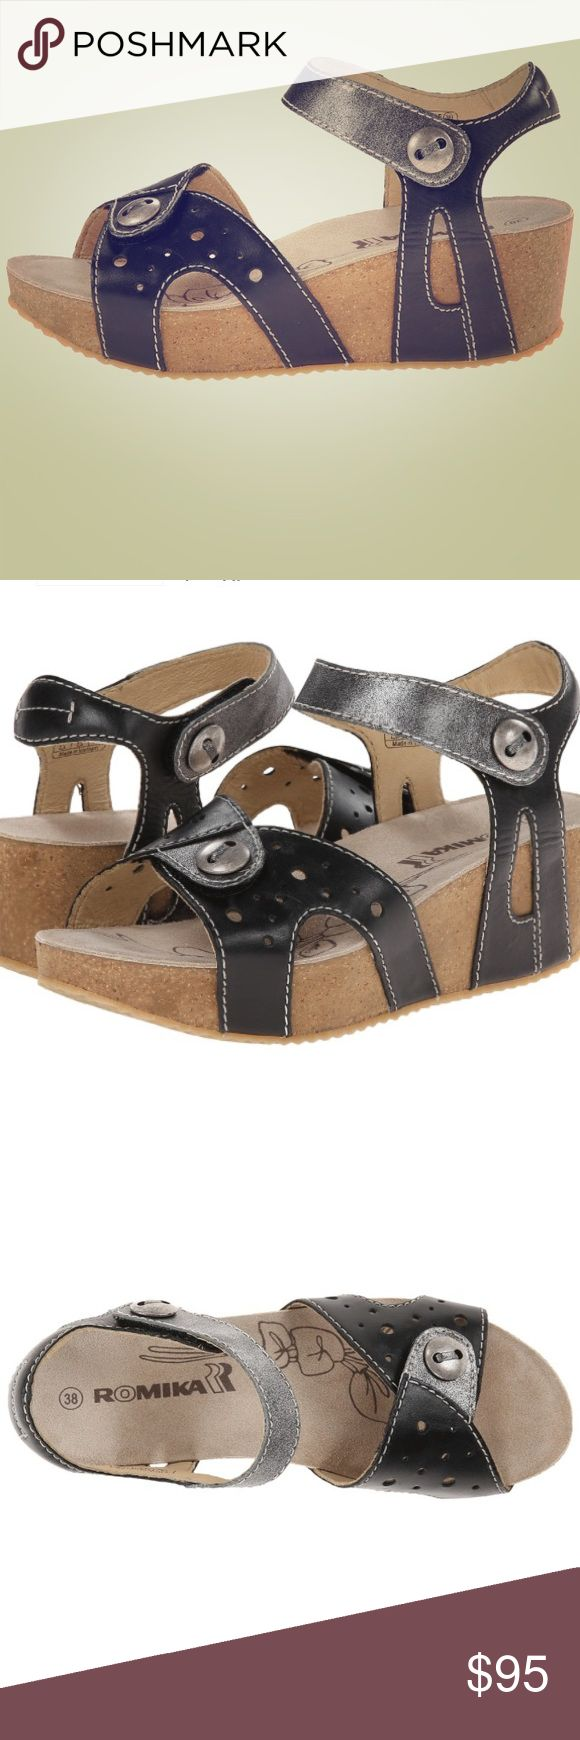 Never worn Romika sandals!! Super cute Romika sandals with platform wedge heel and cute metal accents. Extremely comfortable with adjustable straps for optimum fit. Romika  Shoes Sandals